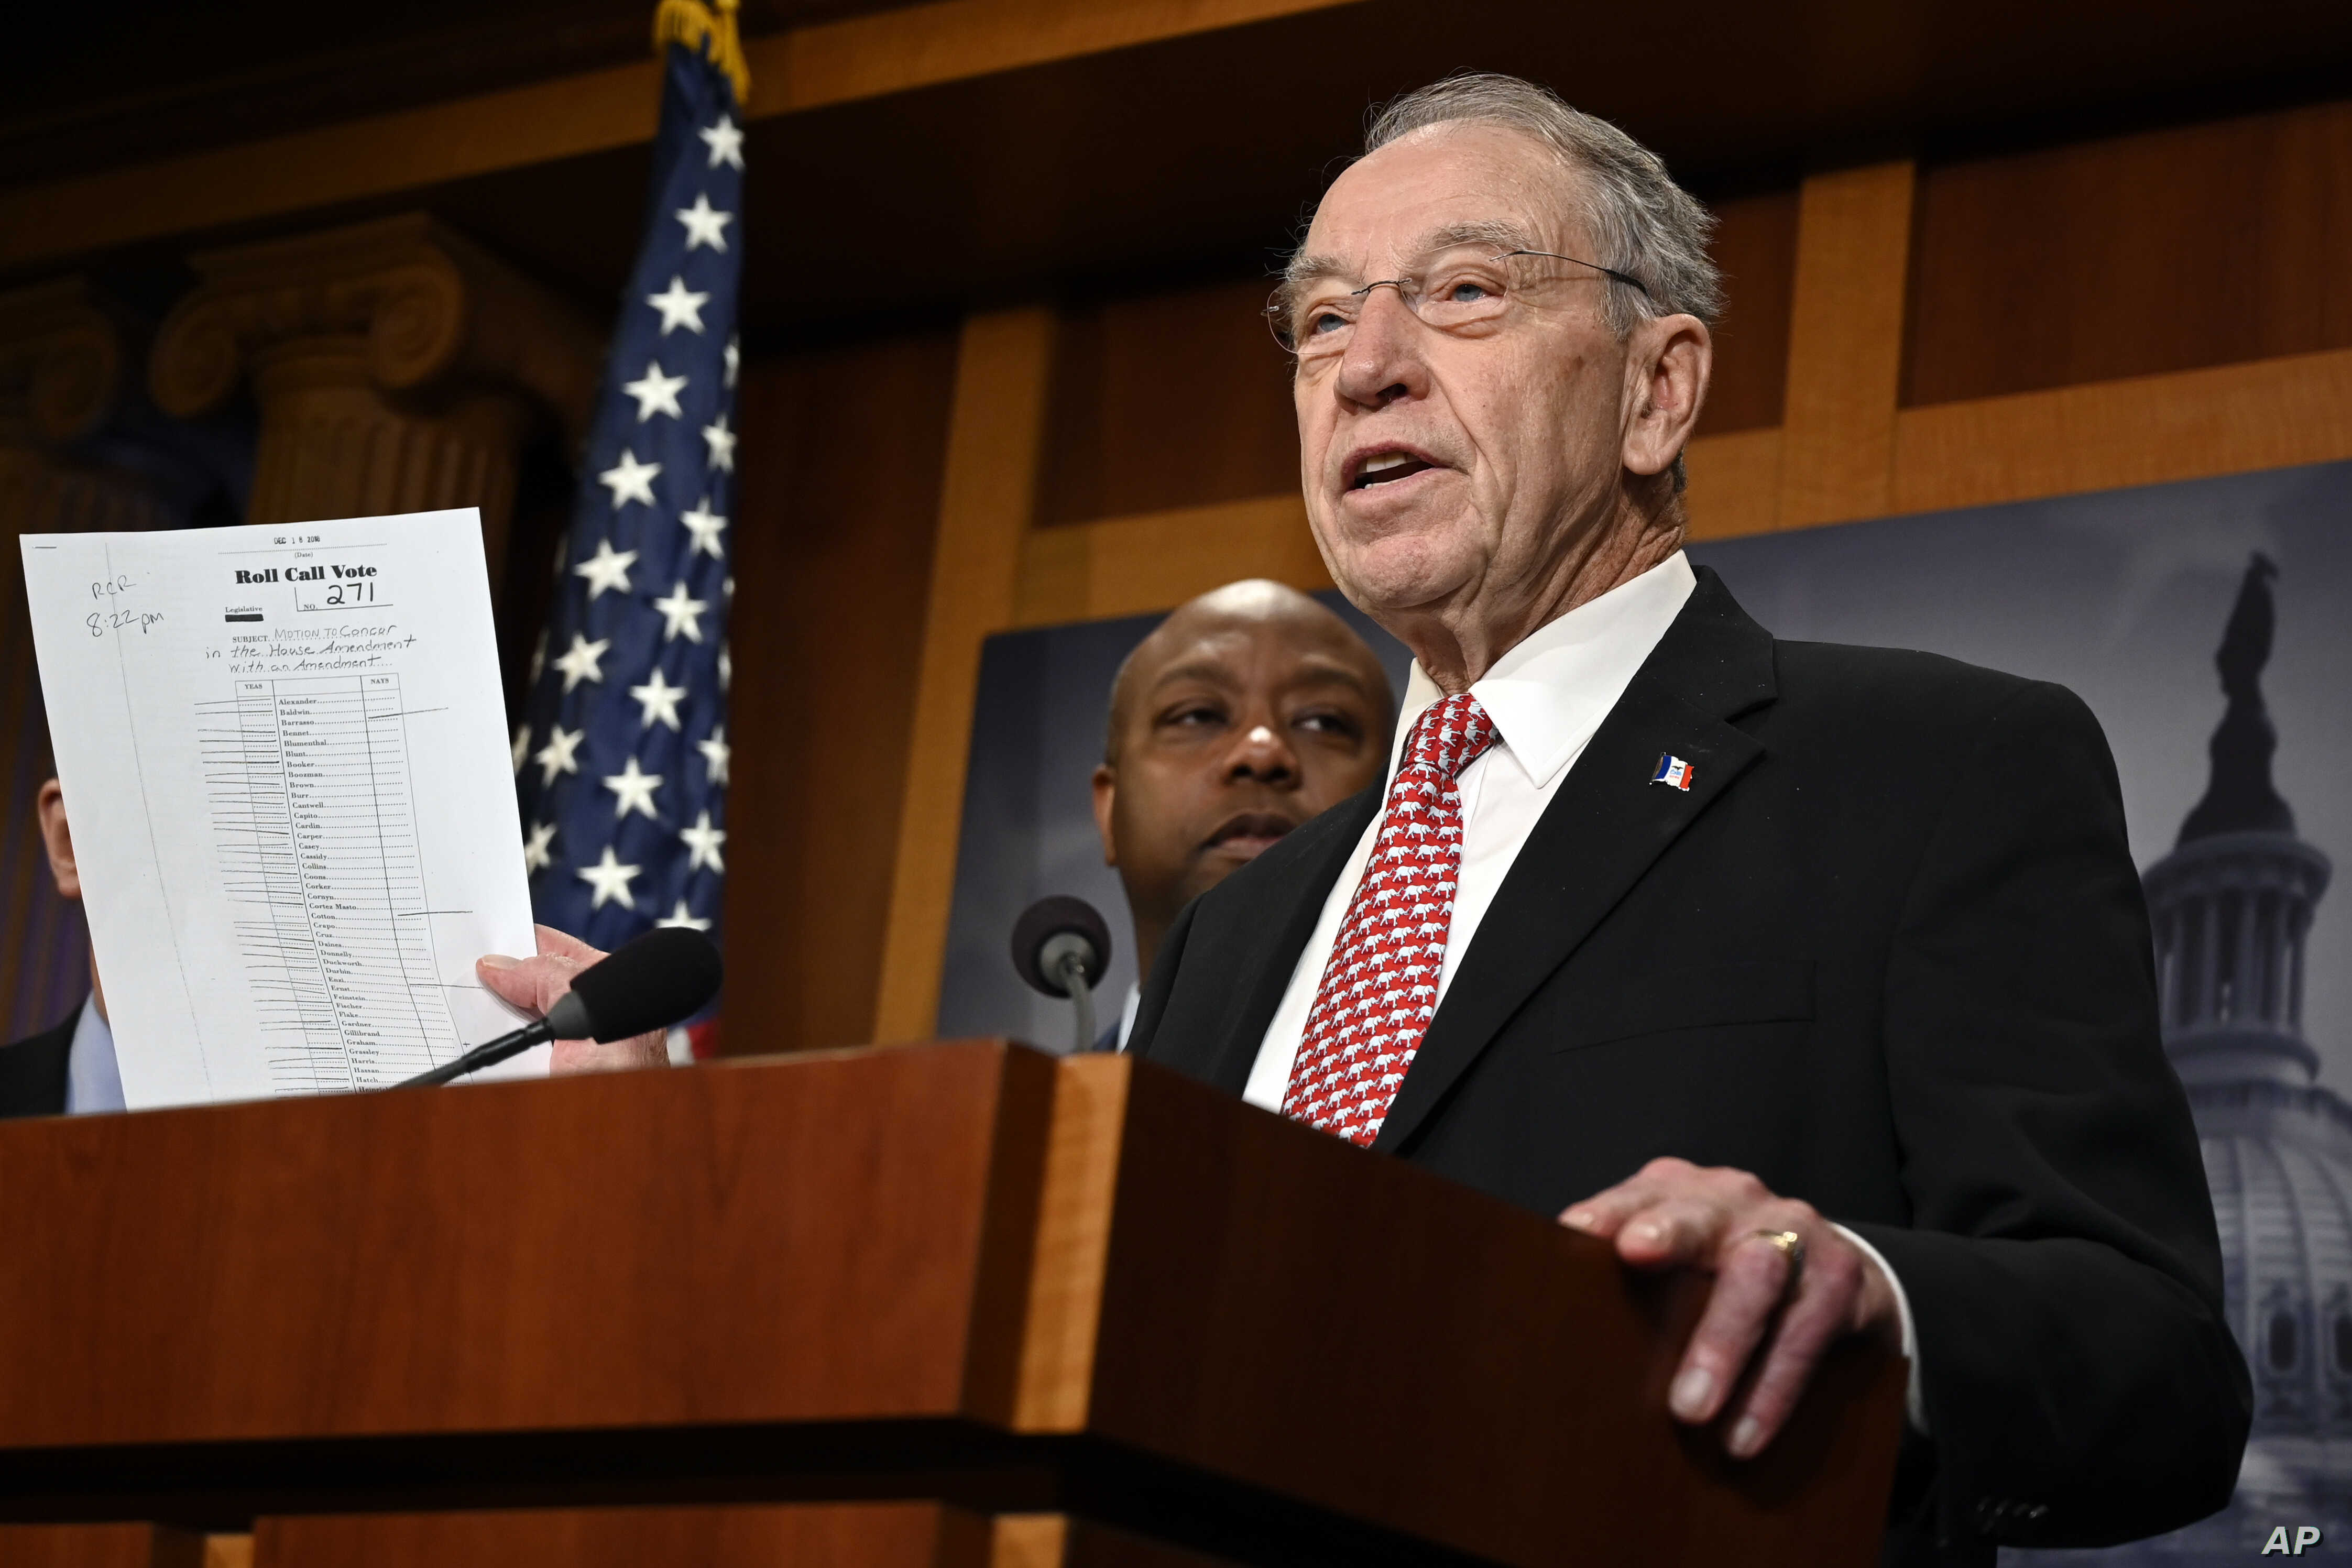 Sen. Chuck Grassley, R-Iowa, speaks during a news conference on Capitol Hill, Dec. 19, 2018, on prison reform legislation.